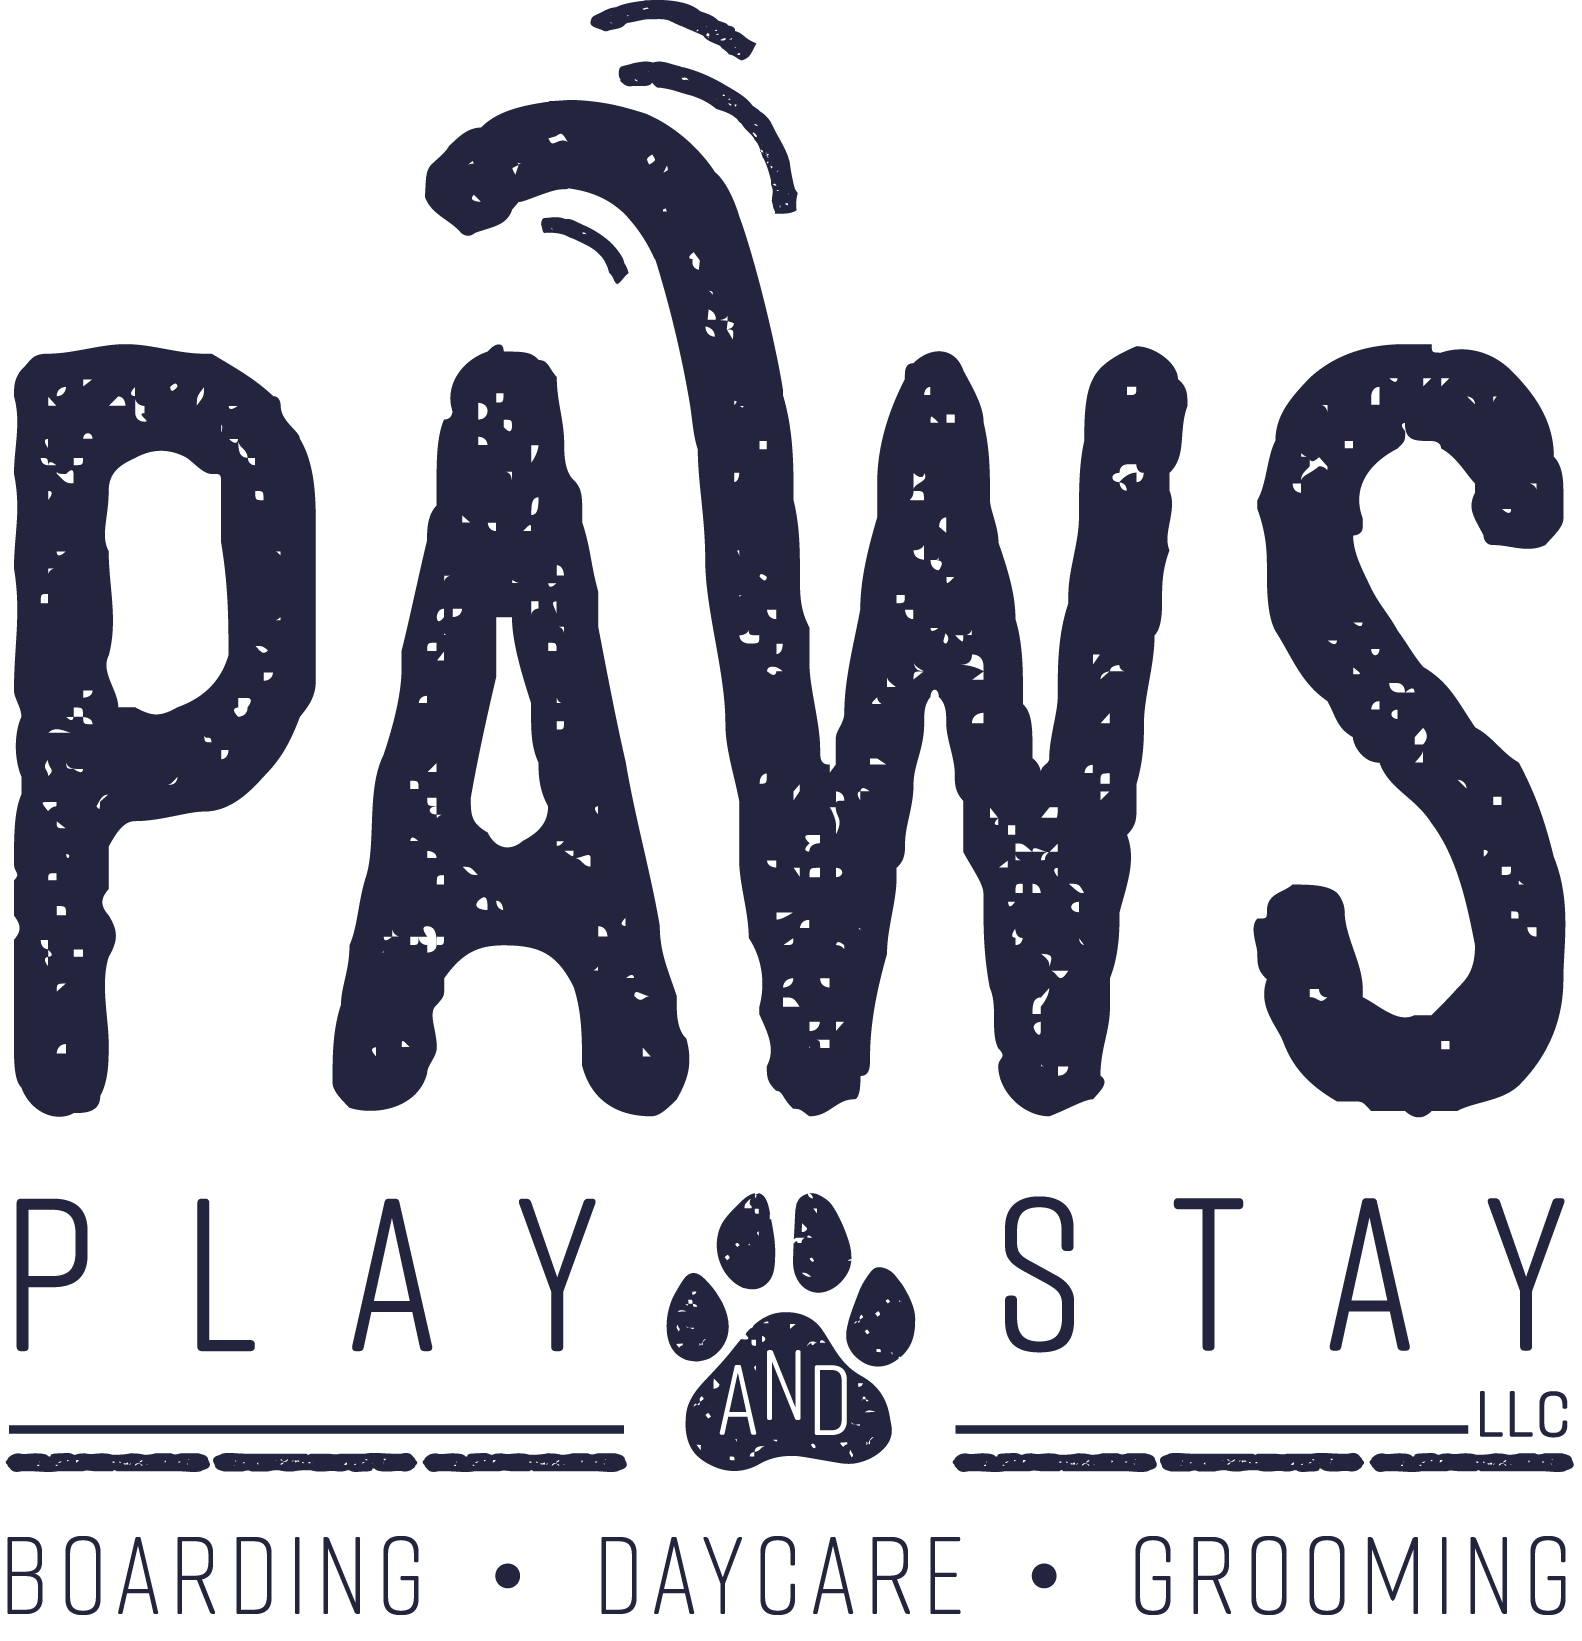 Paws Play and Stay